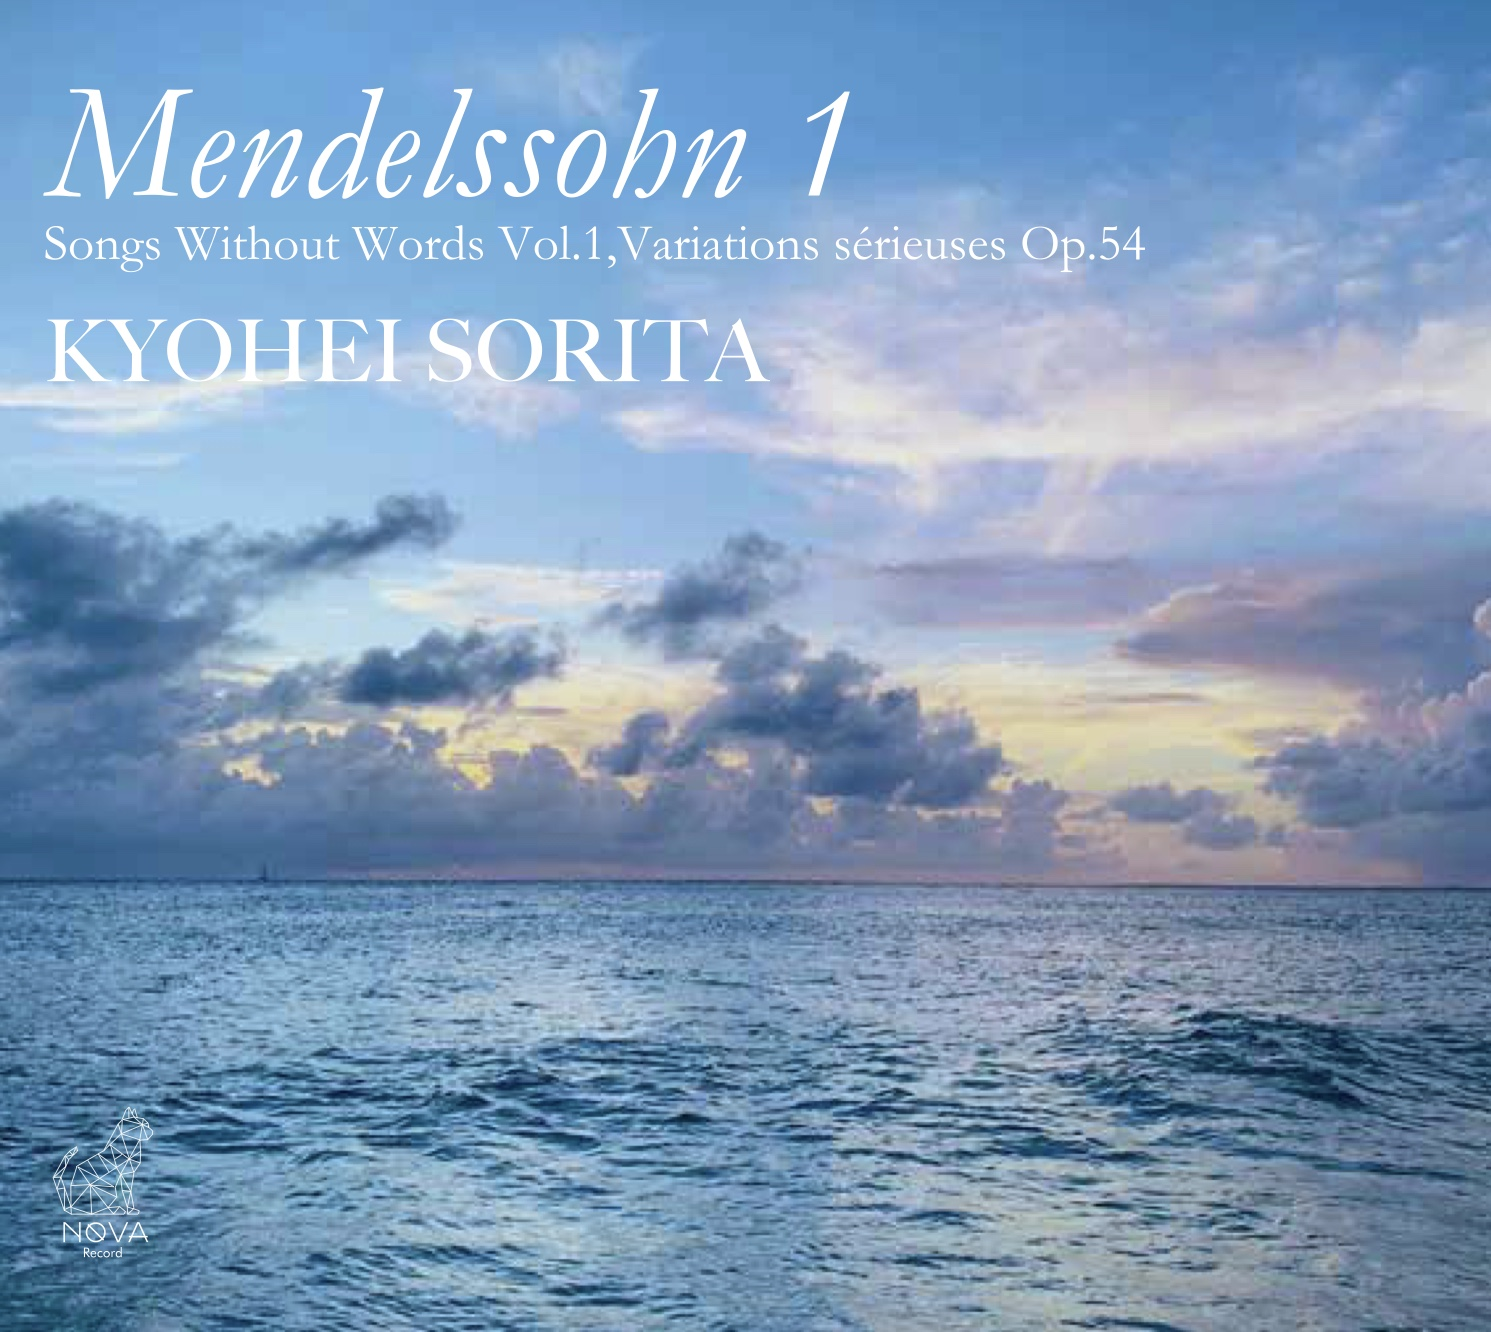 Mendelssohn 1  Songs Without Words Vol.1,Variations Serieuses Op.54